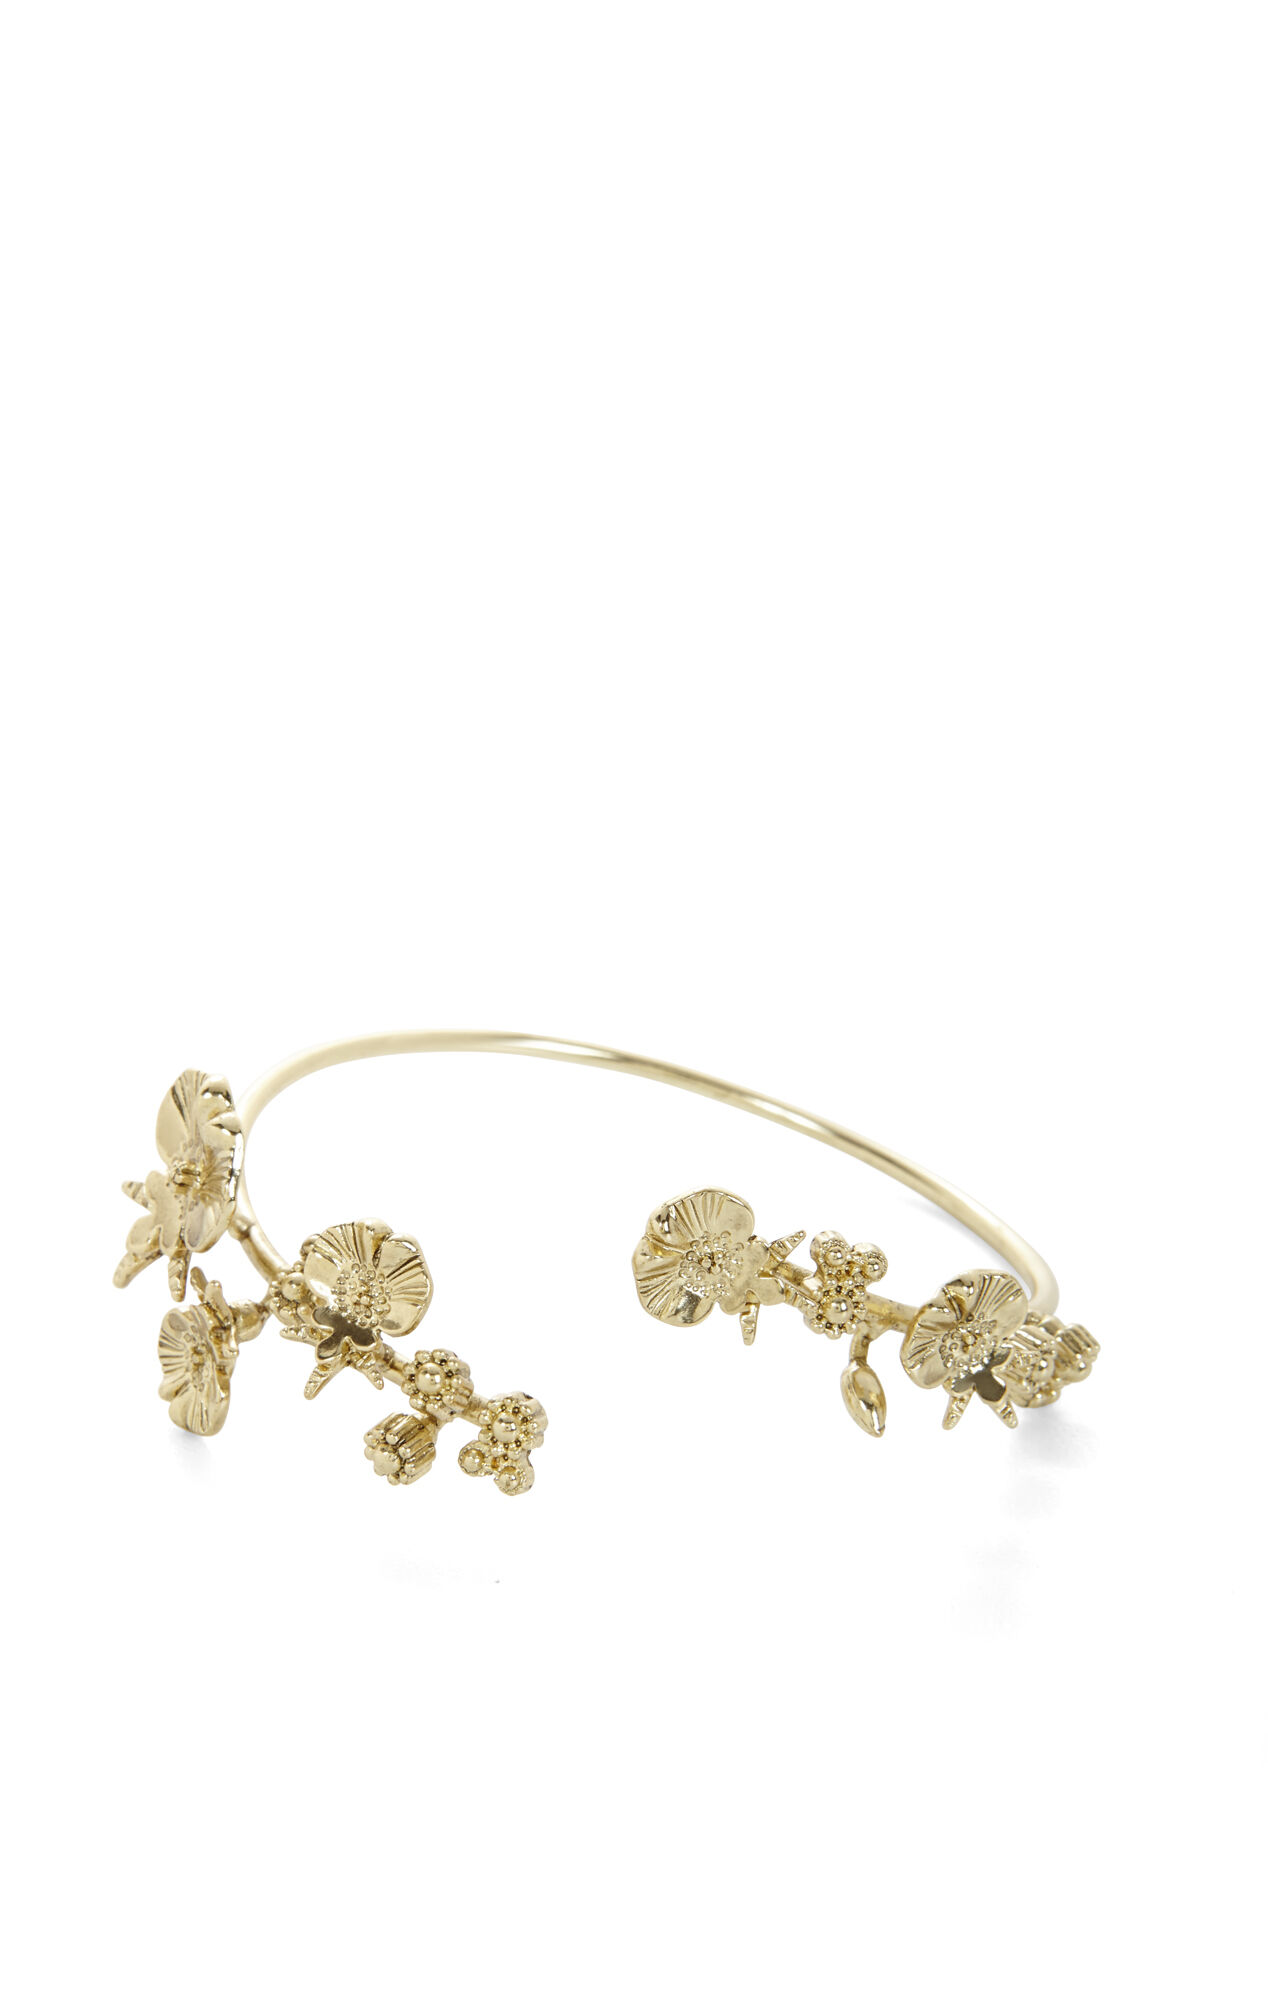 Wildflower Arm Cuff